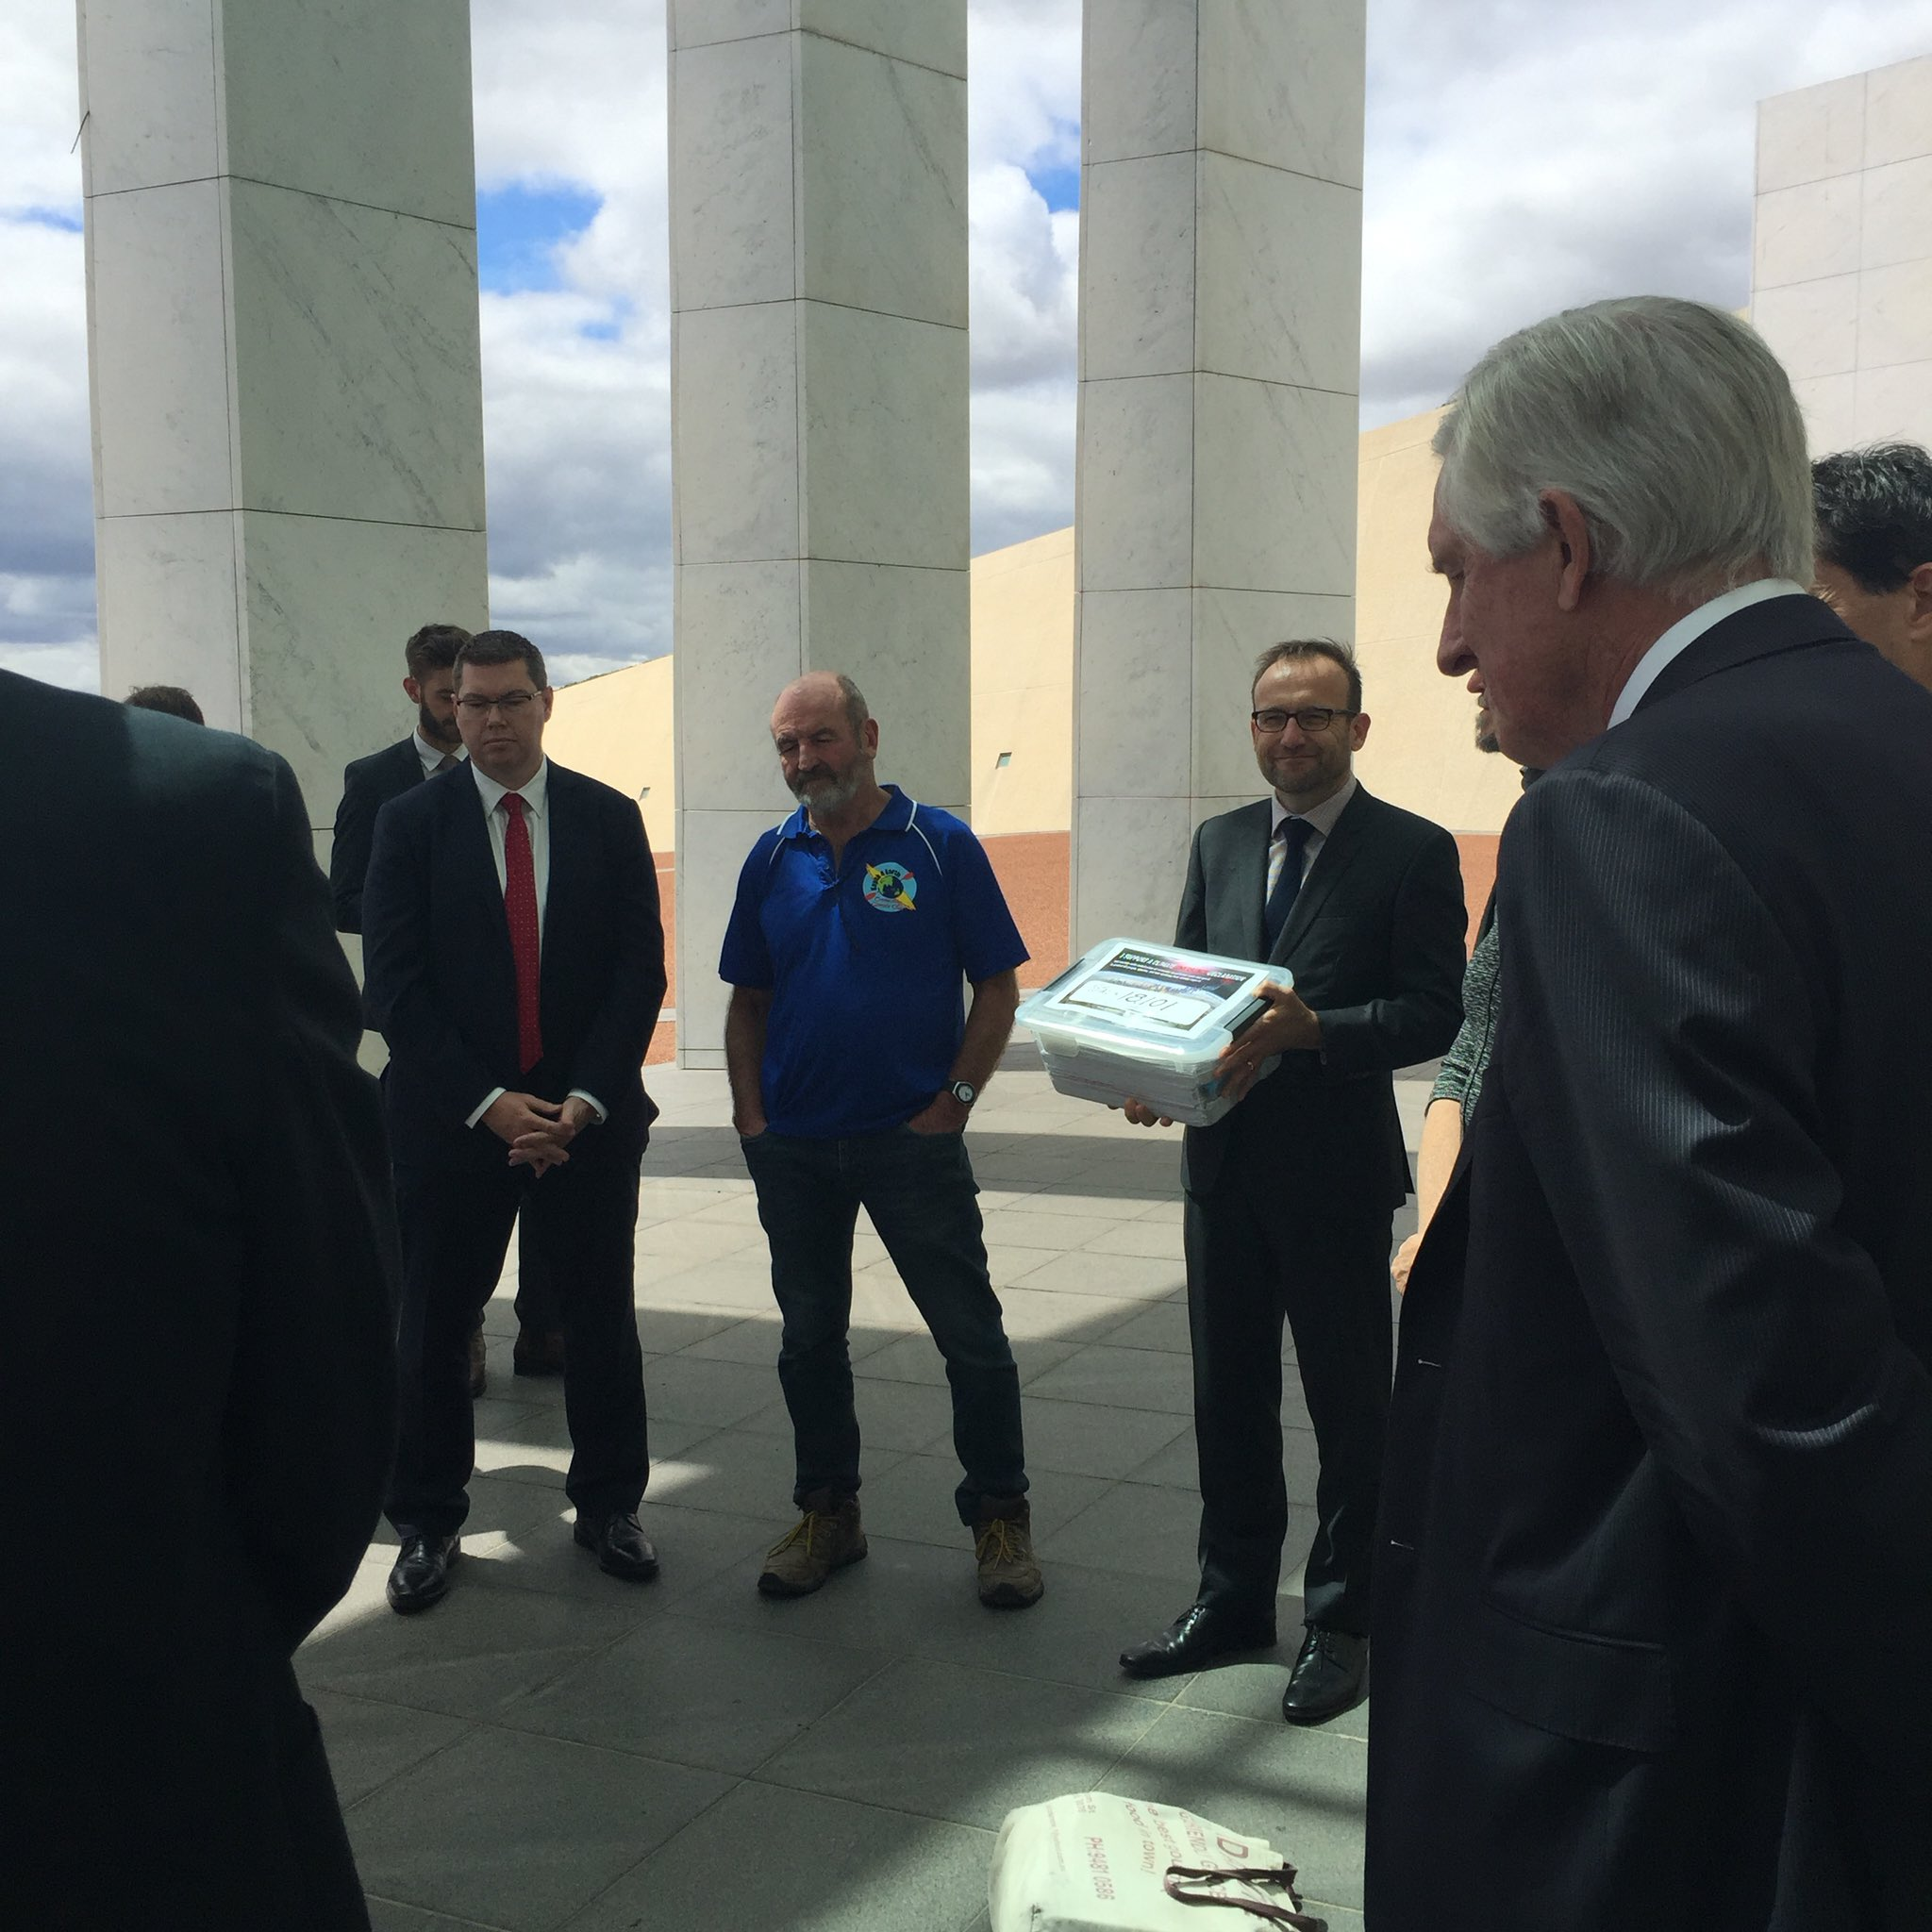 Reps across politics receive from @kayak4earth >18,000 signatures calling for #ClimateEmergencyDeclaration. #auspol https://t.co/ggRQLhK6UX